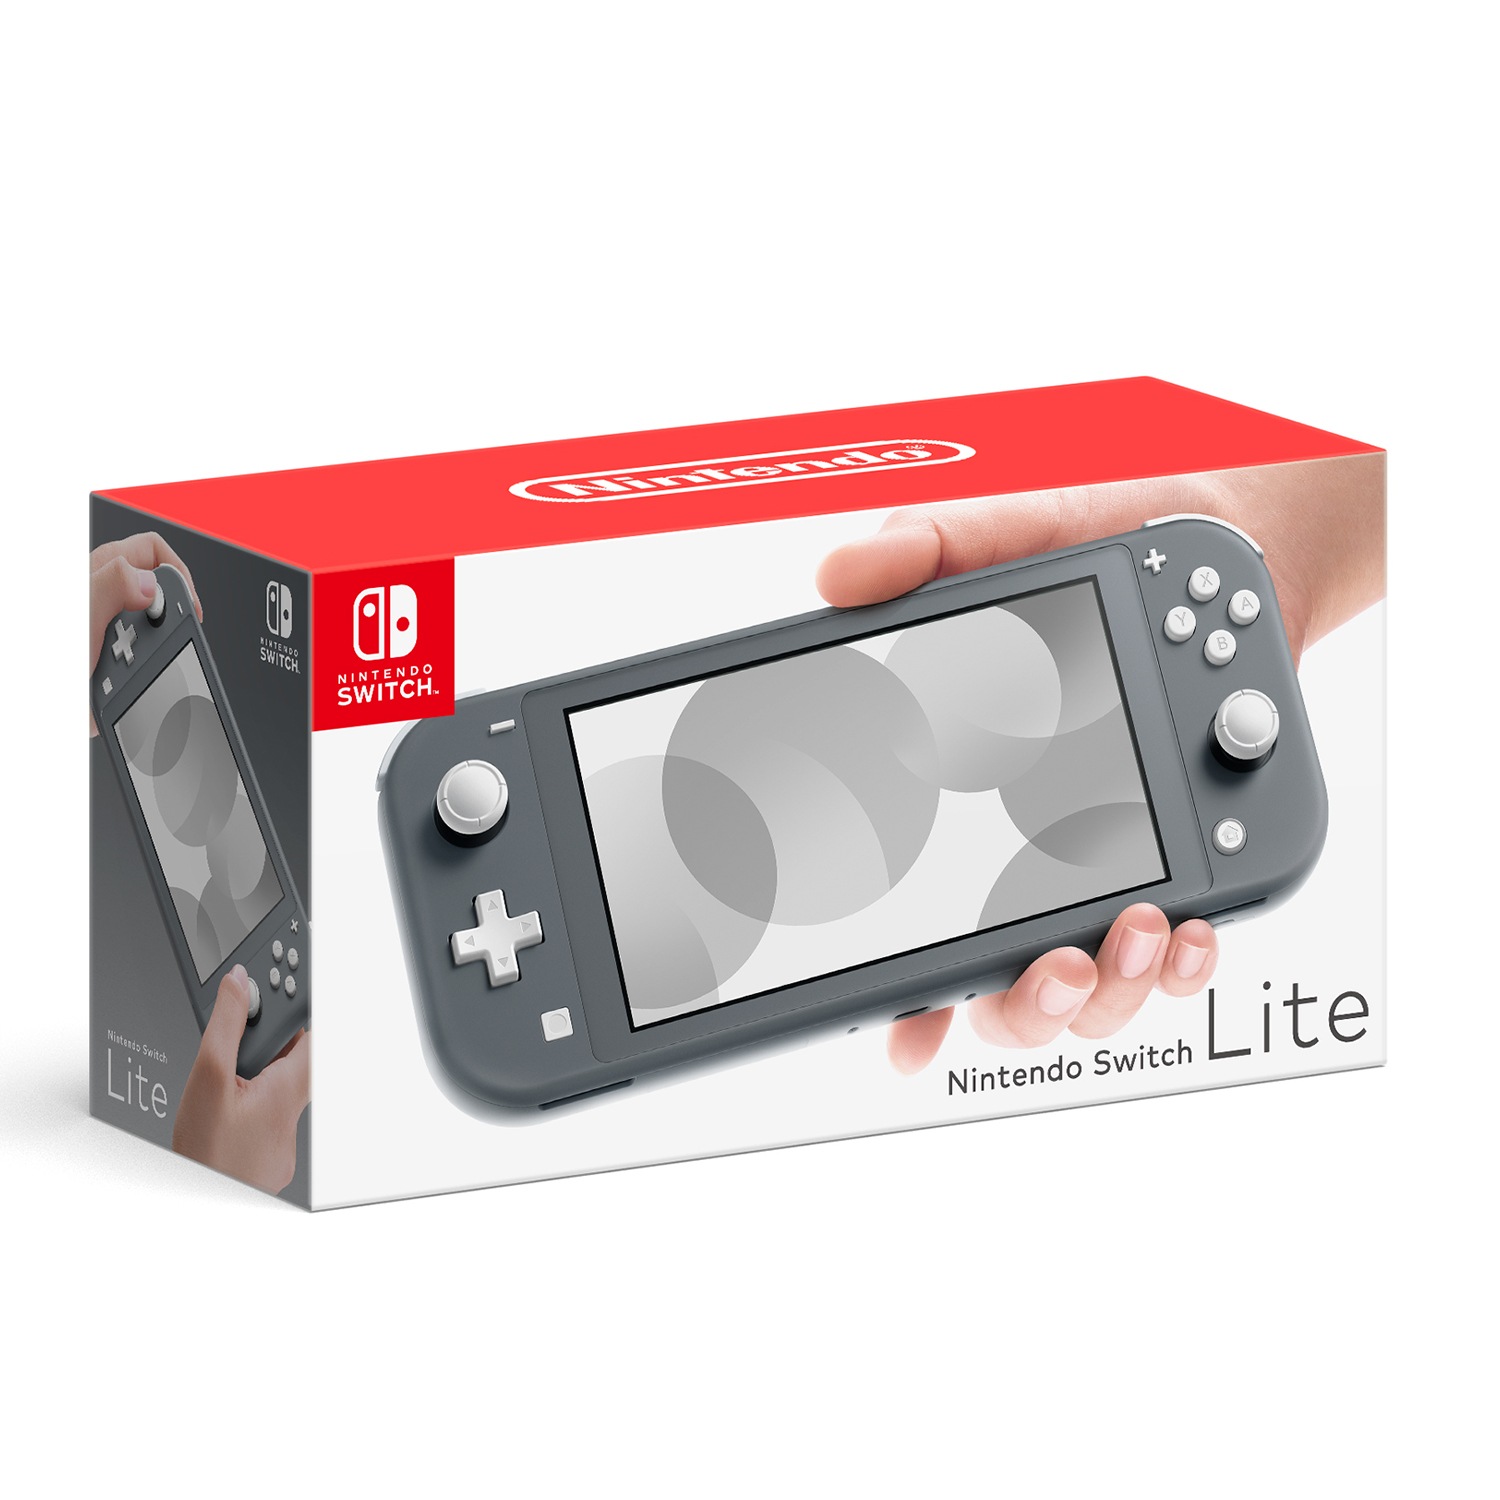 miniature 10 - Nintendo Switch Lite Console Bundle with Extra Warranty Protection